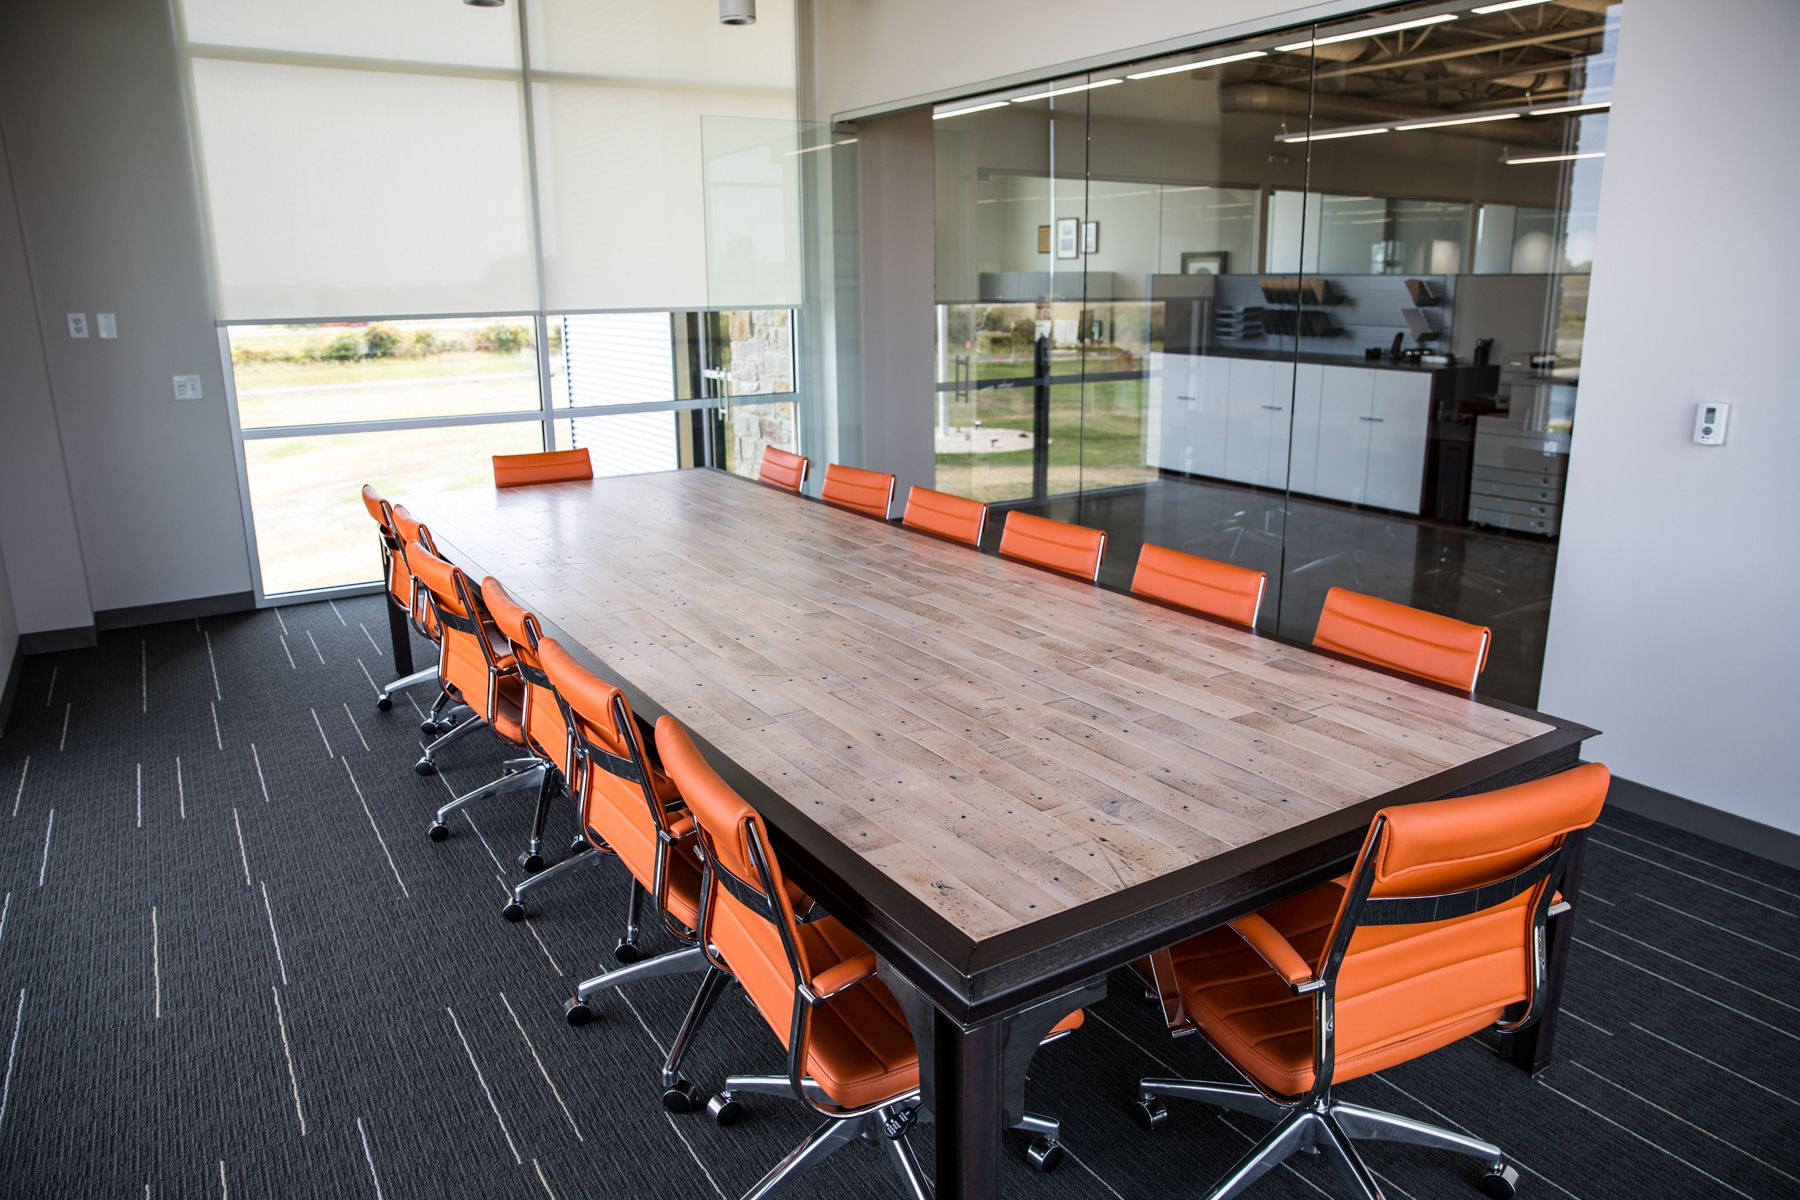 WDS office conference room with table and chairs